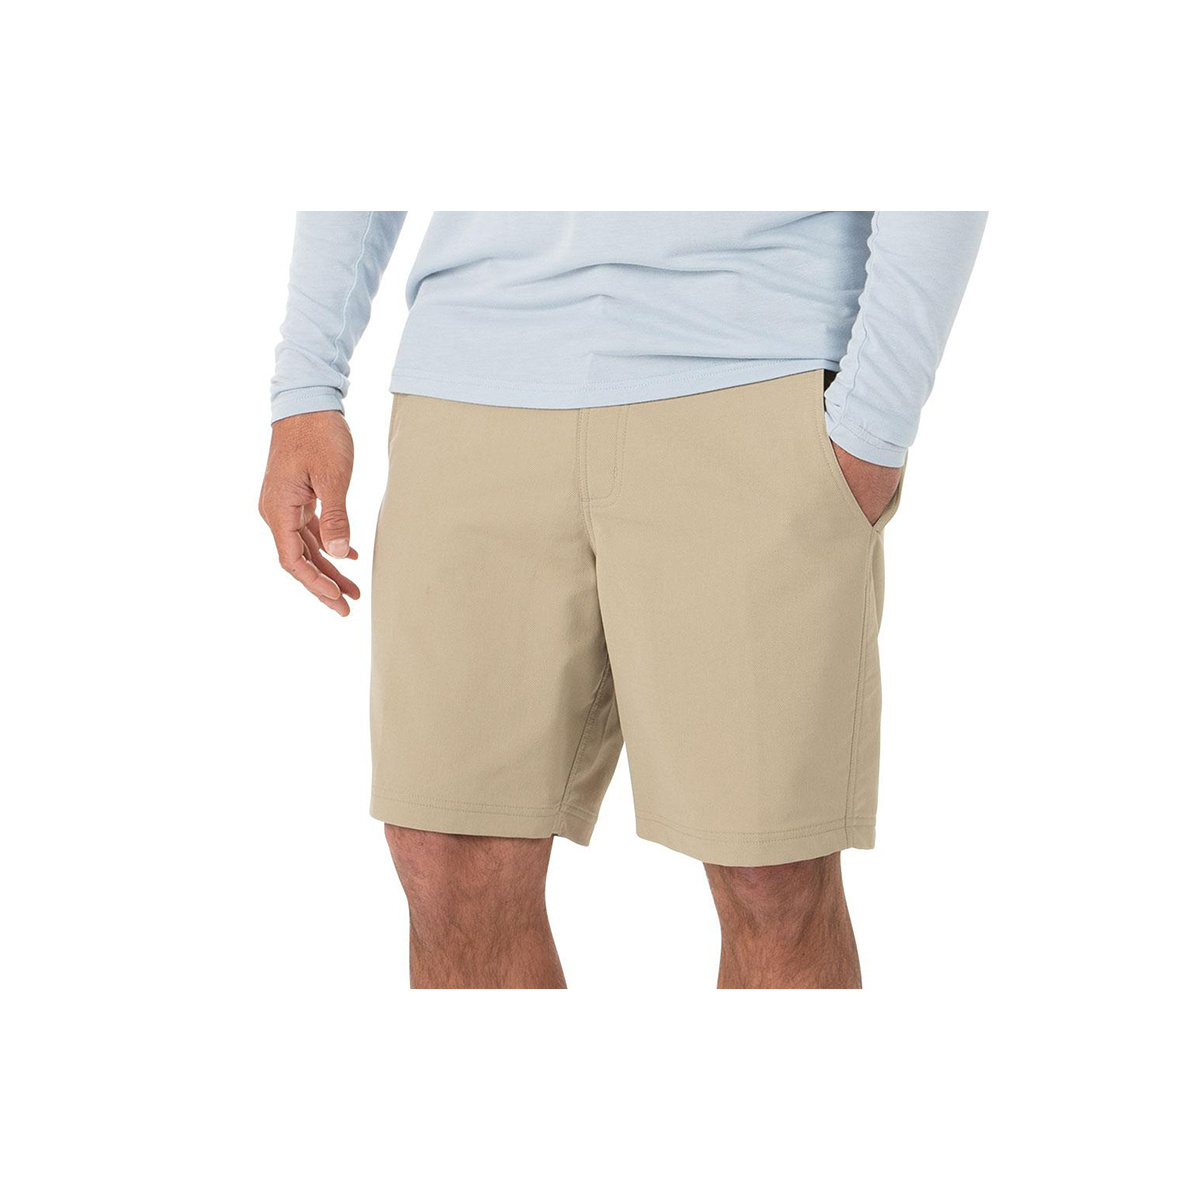 Free Fly Apparel Men's Utility Short